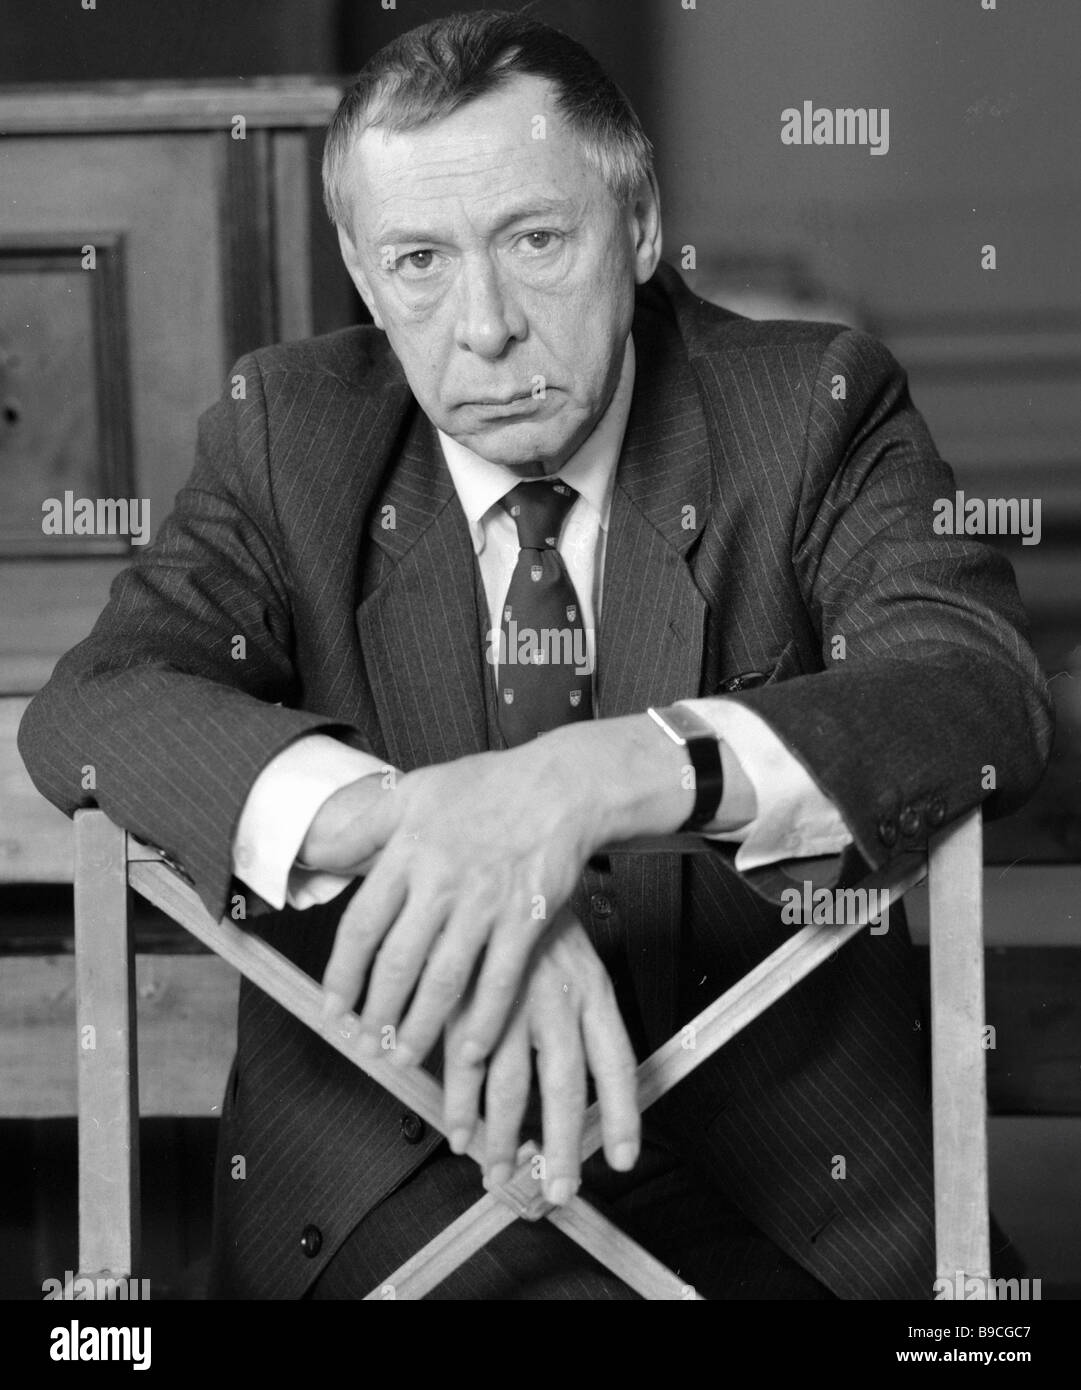 Oleg Yefremov People s Artist of the USSR principal stage director of the Moscow Gorky Academic Arts Theater MKhAT - Stock Image